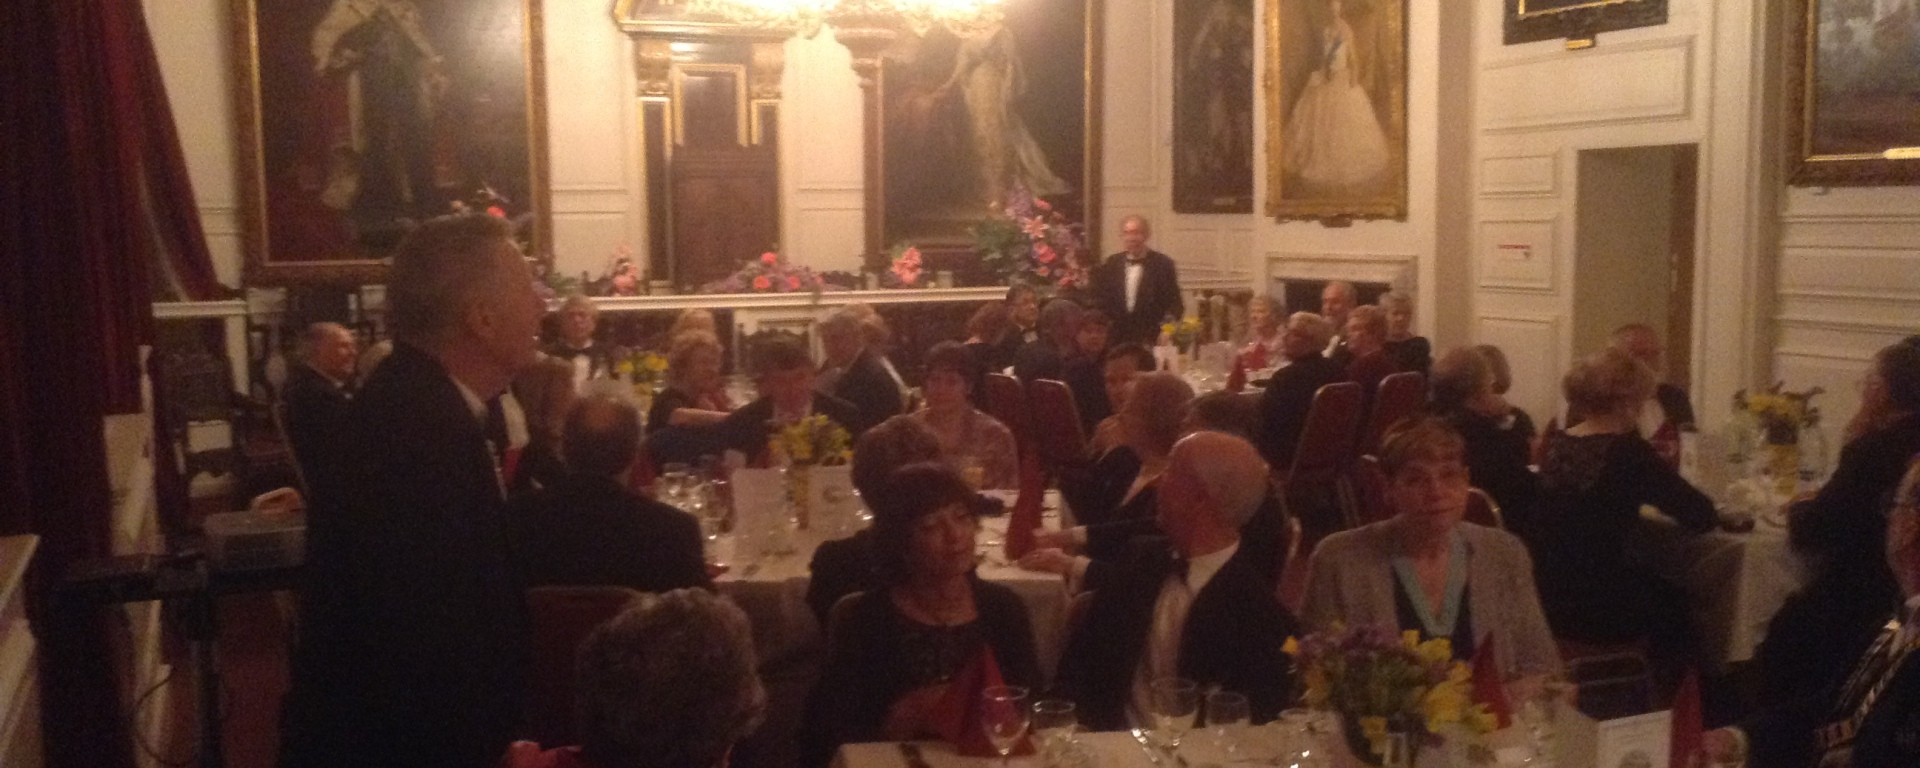 philip turner president windsor and eton presidents night